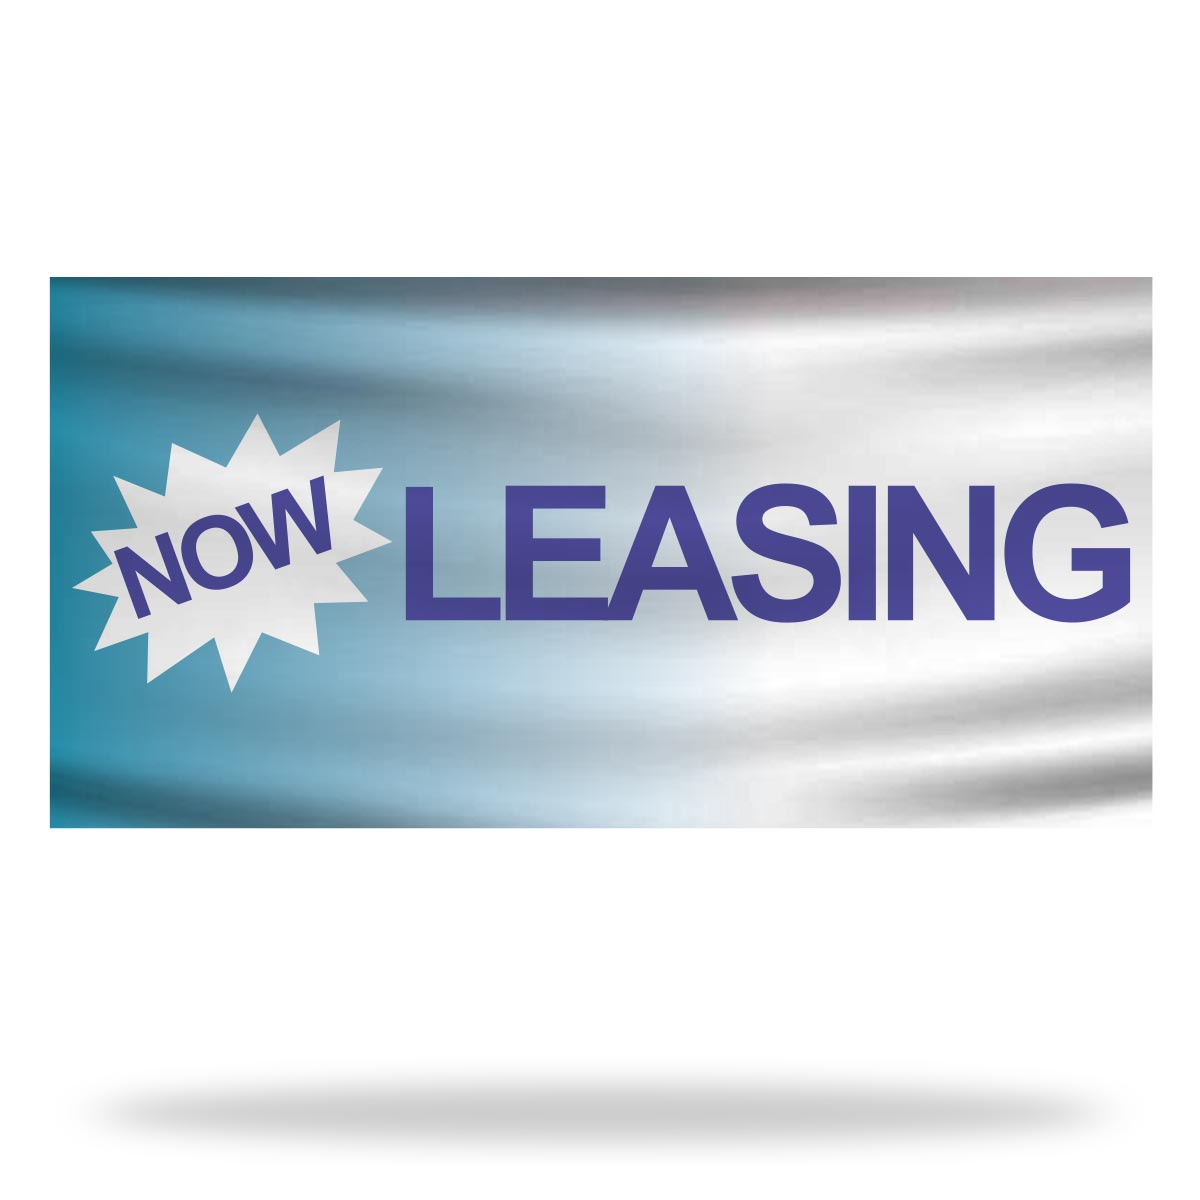 Now Leasing Flags & Banners Design 01